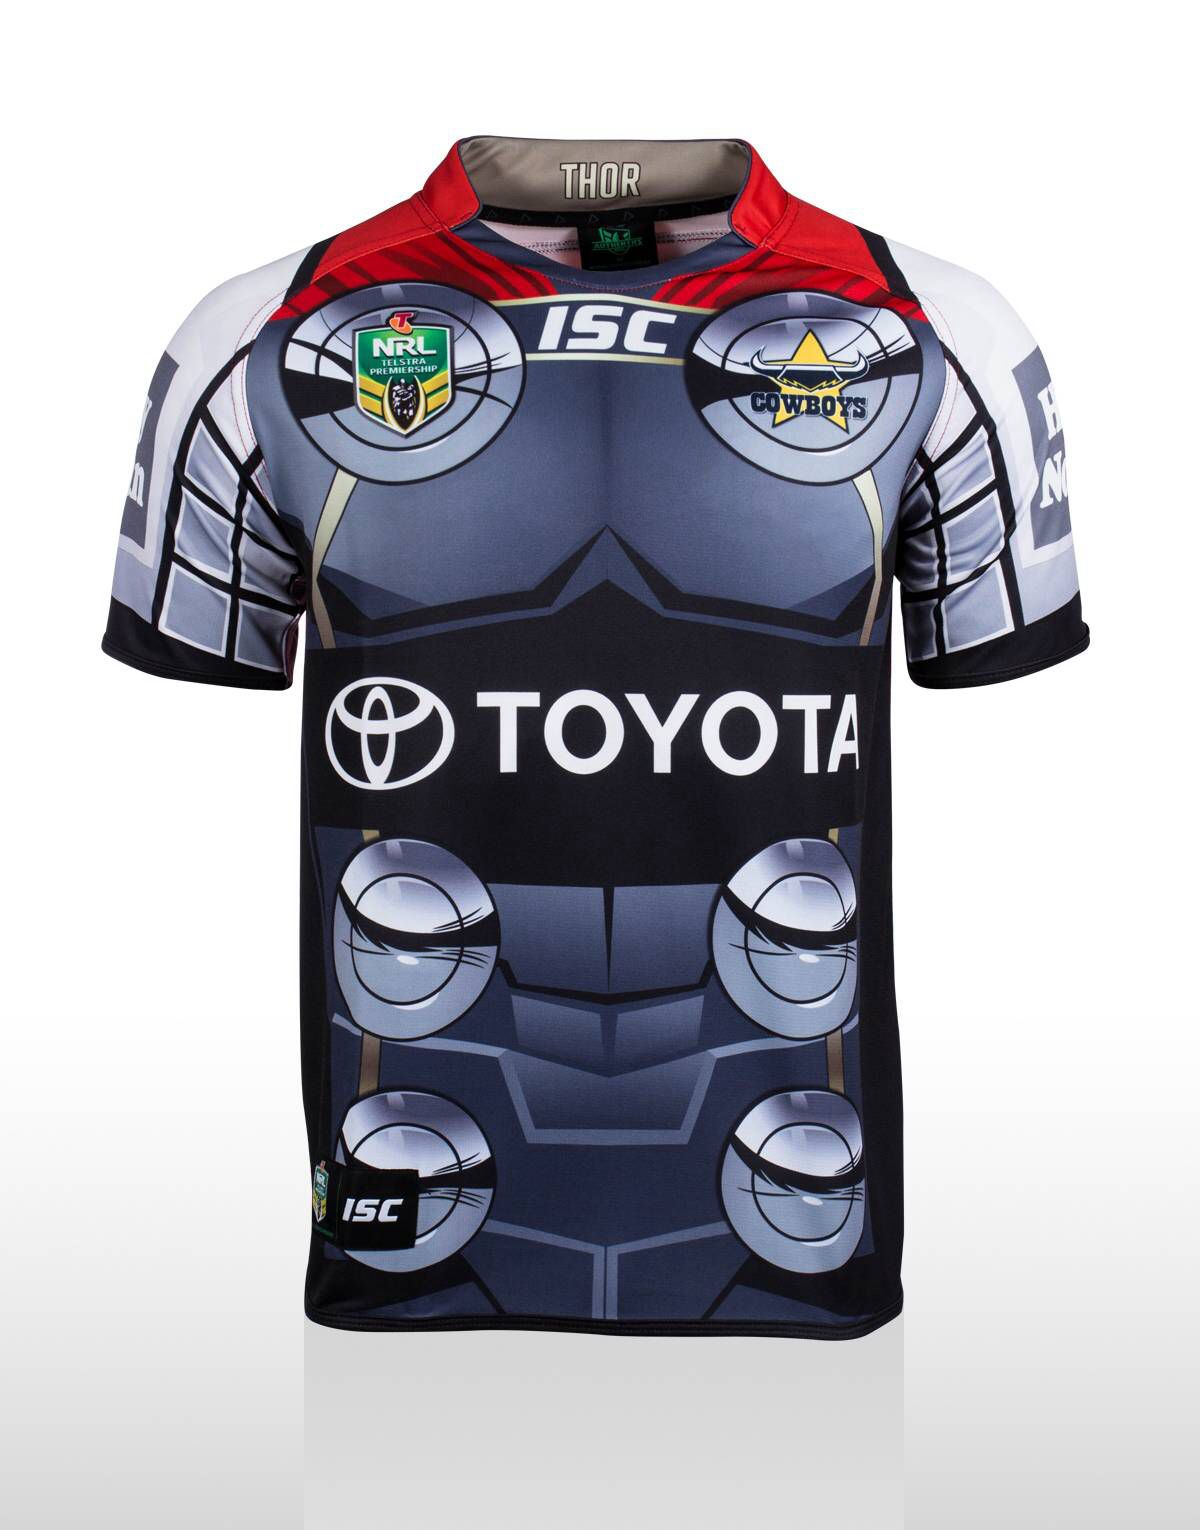 1bdc8d96182 North Queensland Cowboys Thor Jersey | LEGENDS | Rugby jersey design ...